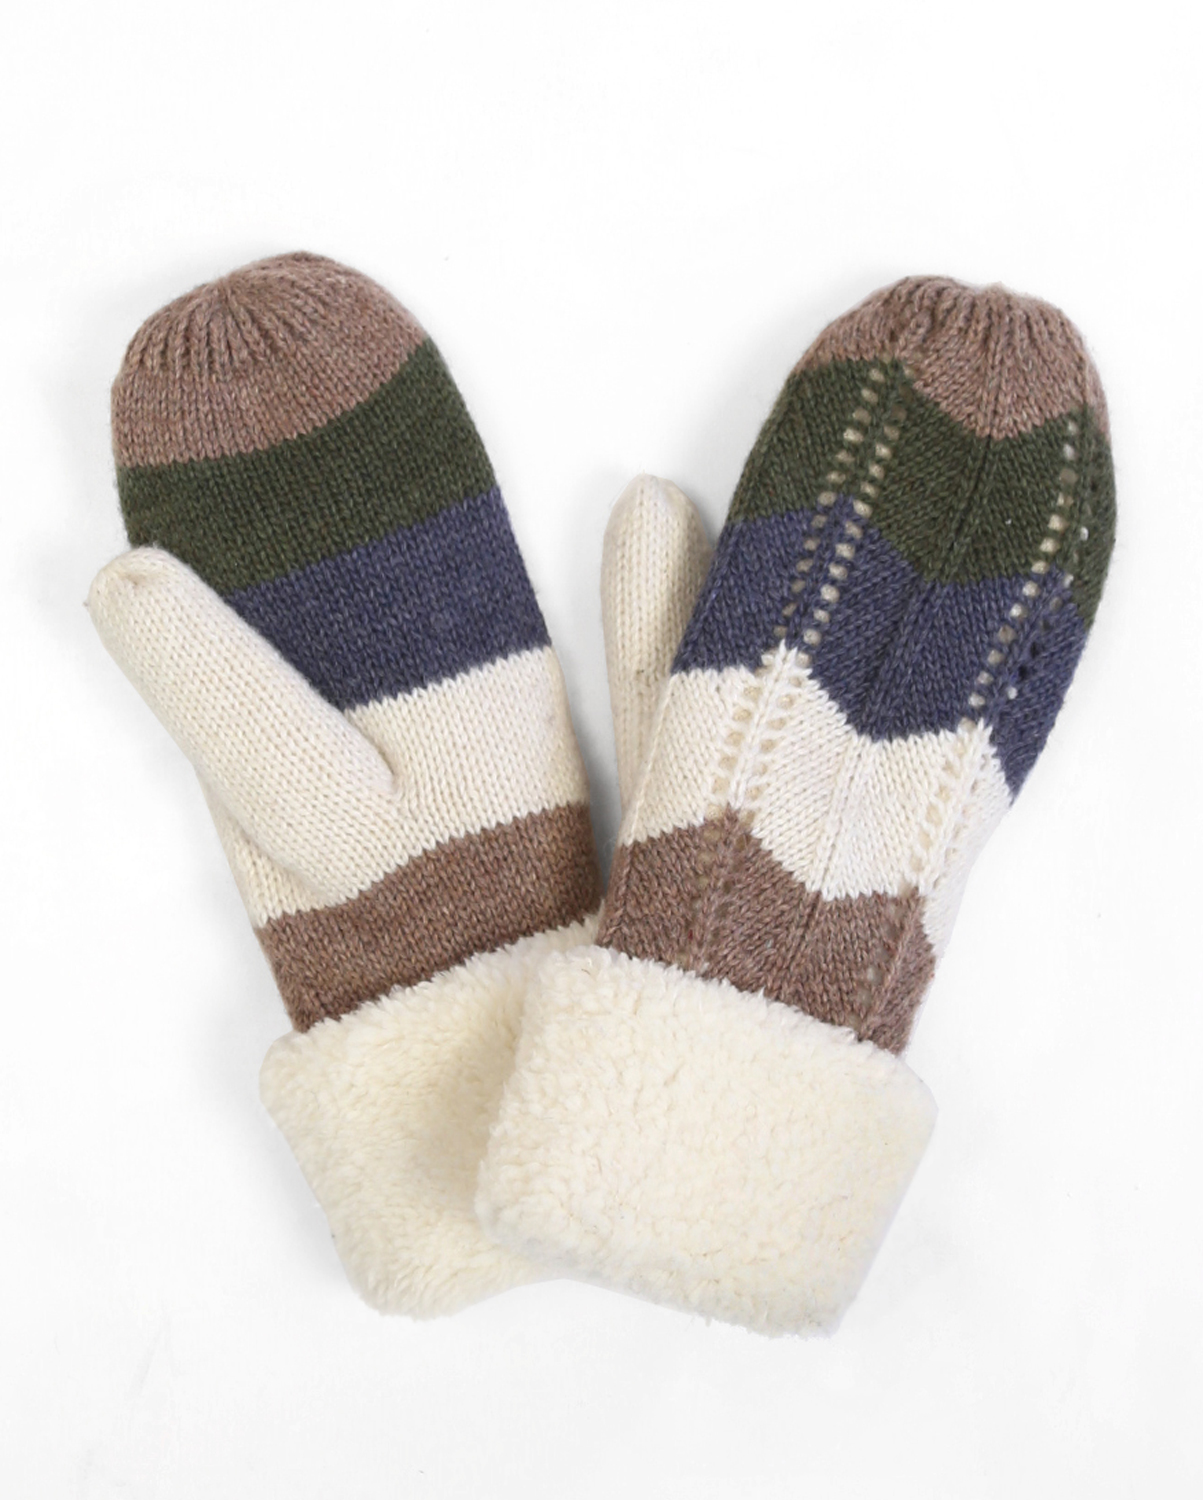 SWG120(IV)-wholesale-gloves-mittens-chevron-pattern-multi-color-cuff-faux-fur-lining-one-size-acrylic-wool(0).jpg